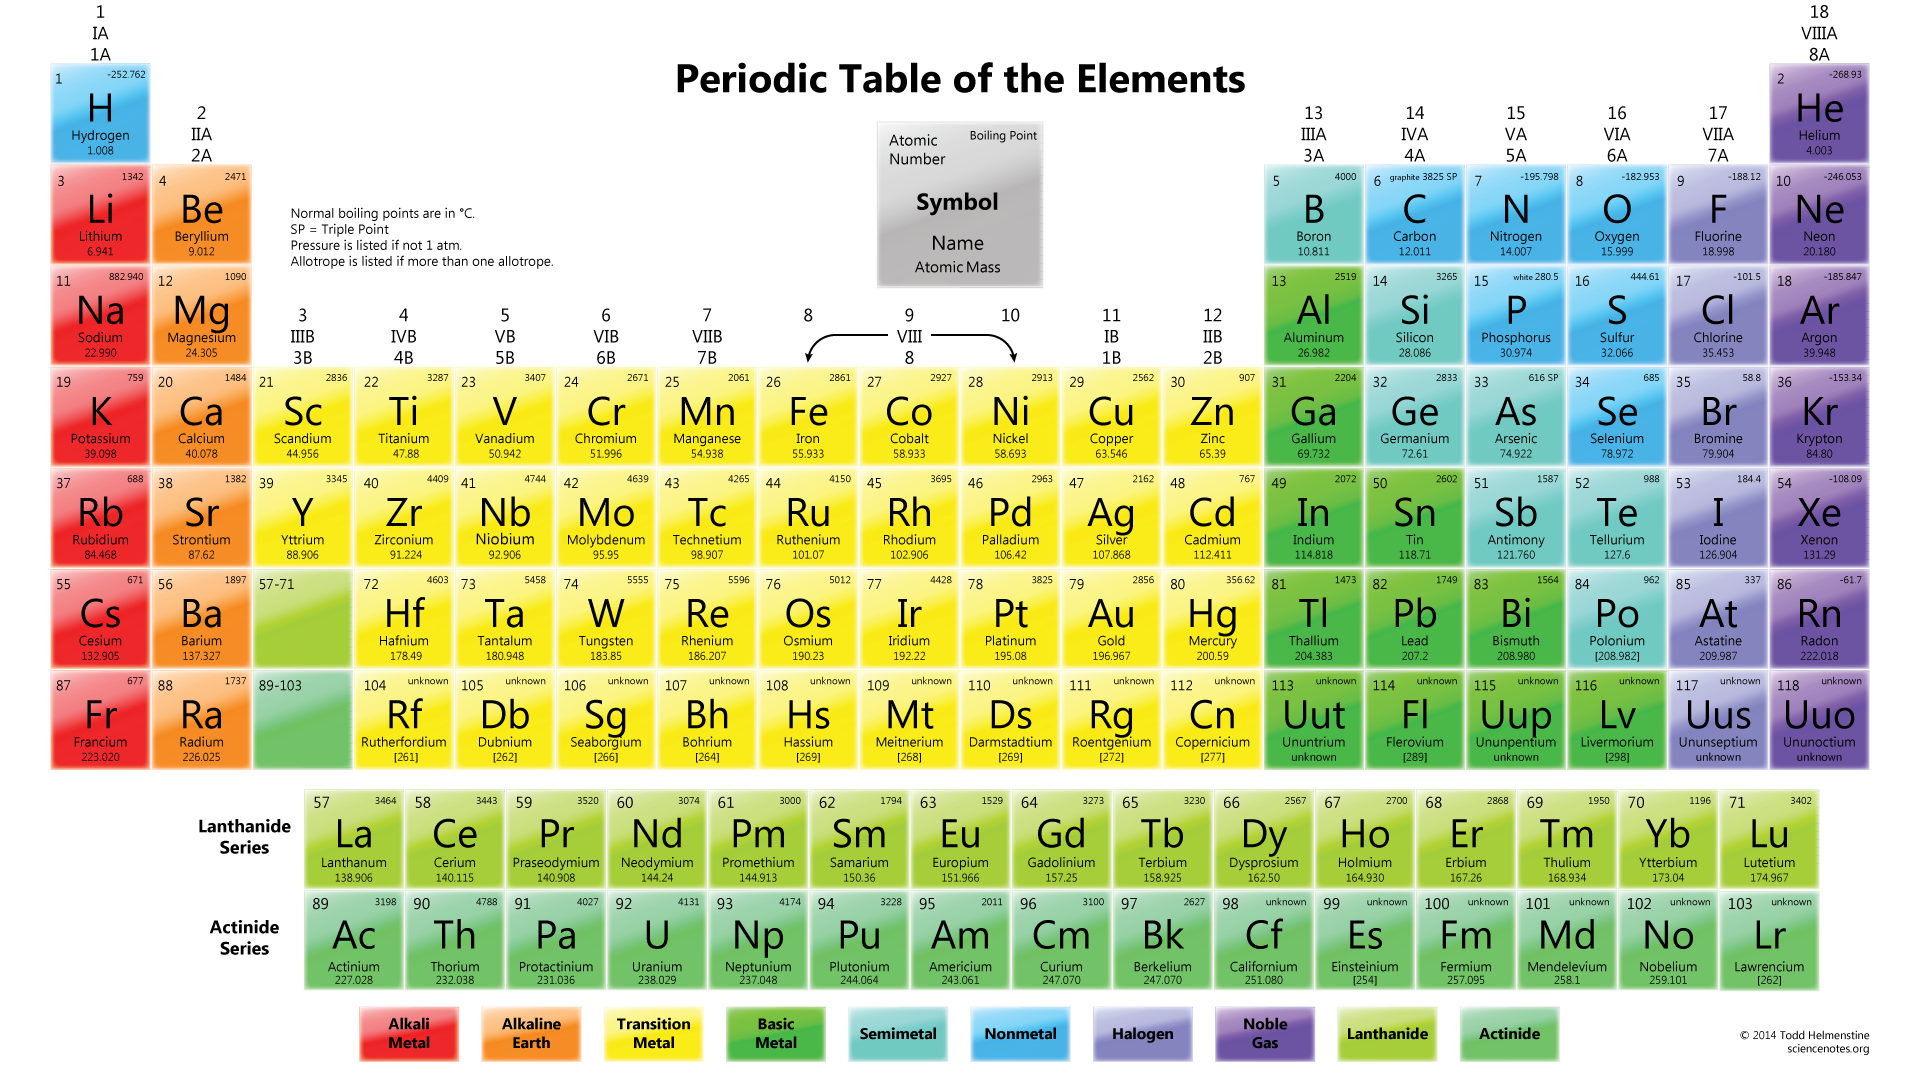 periodic table with element boiling points - Periodic Table Of Elements Quiz 1 18